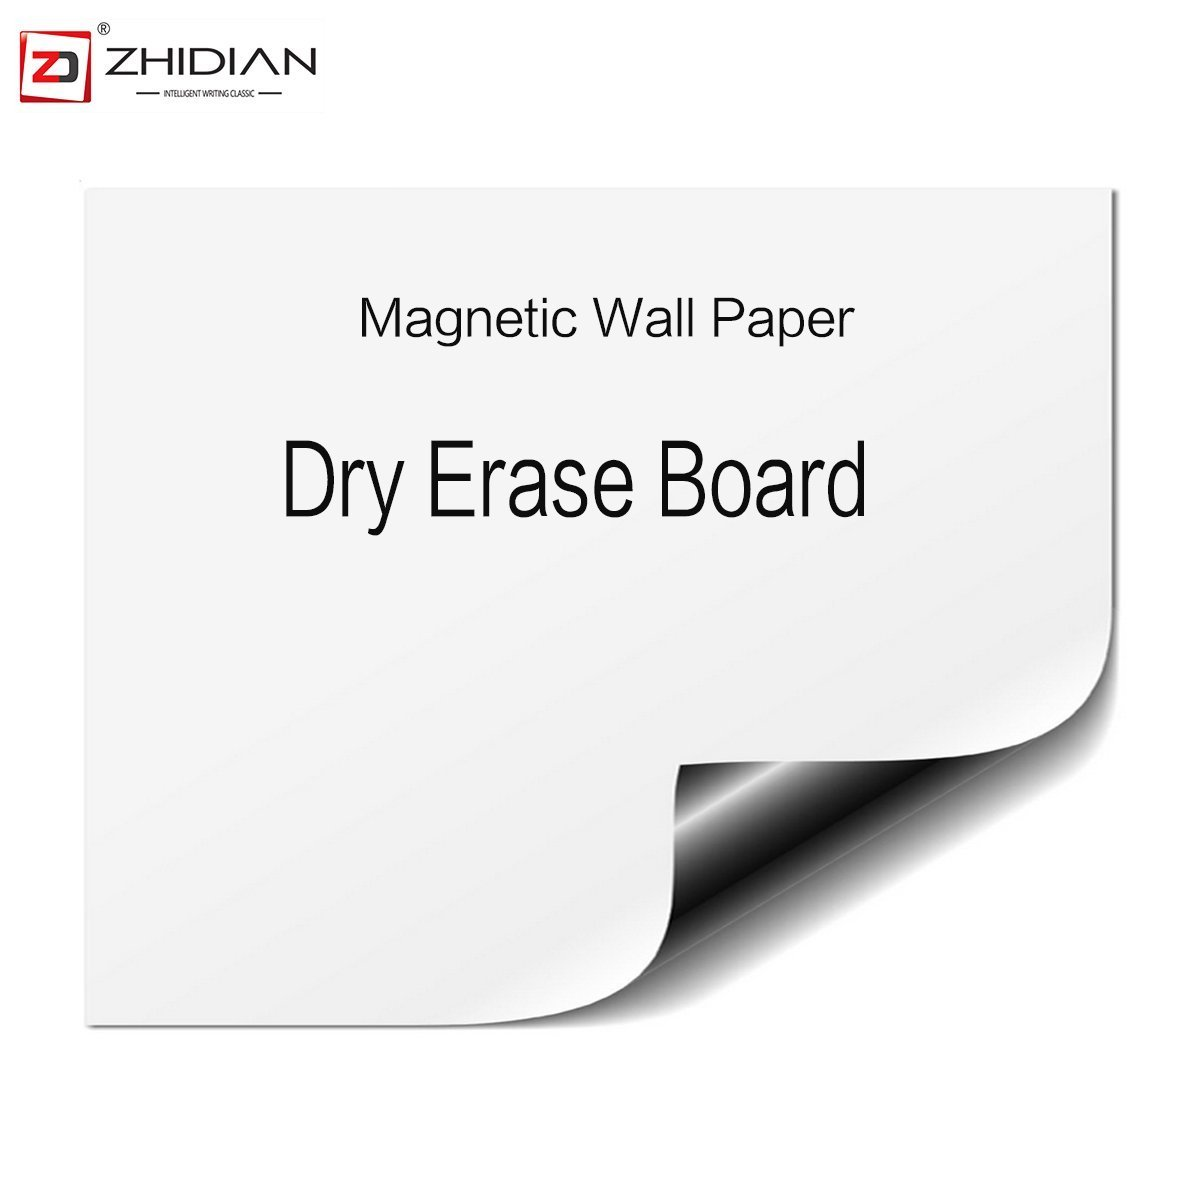 ZHIDIAN Magnetic White Boards Dry Erase Boards Wall Stickers 16×12 Inches There are Adhesive on The Backs Easy to Install.